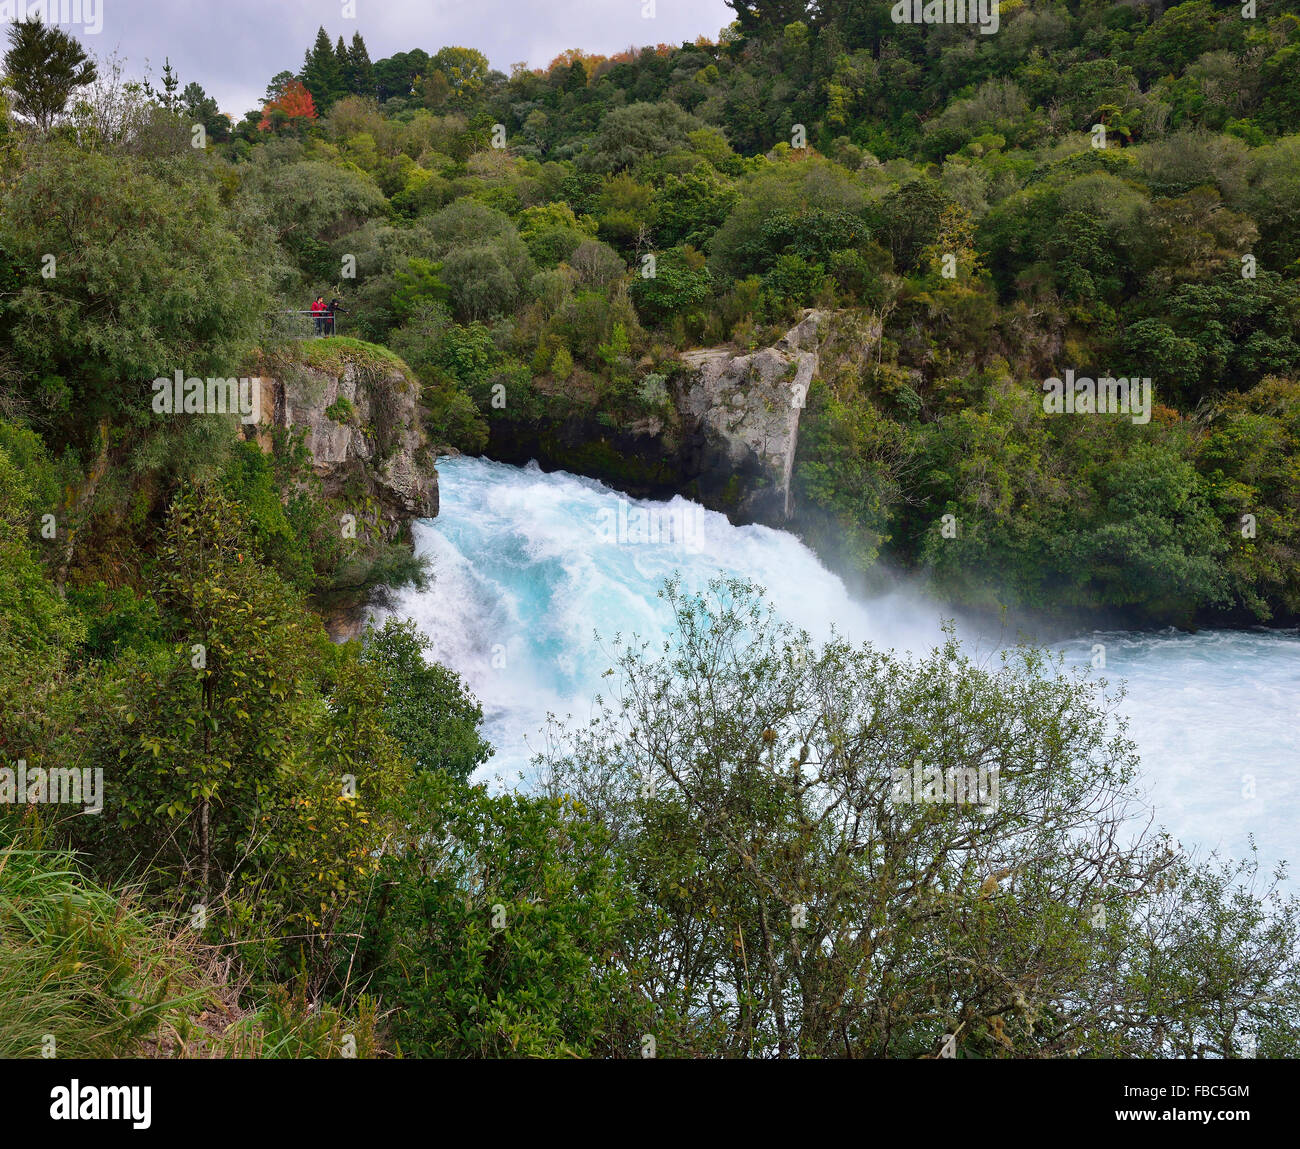 Huka Falls 2 people looking over at the  phenomenon of natural hydro power - more than 220,000 litres of water per - Stock Image